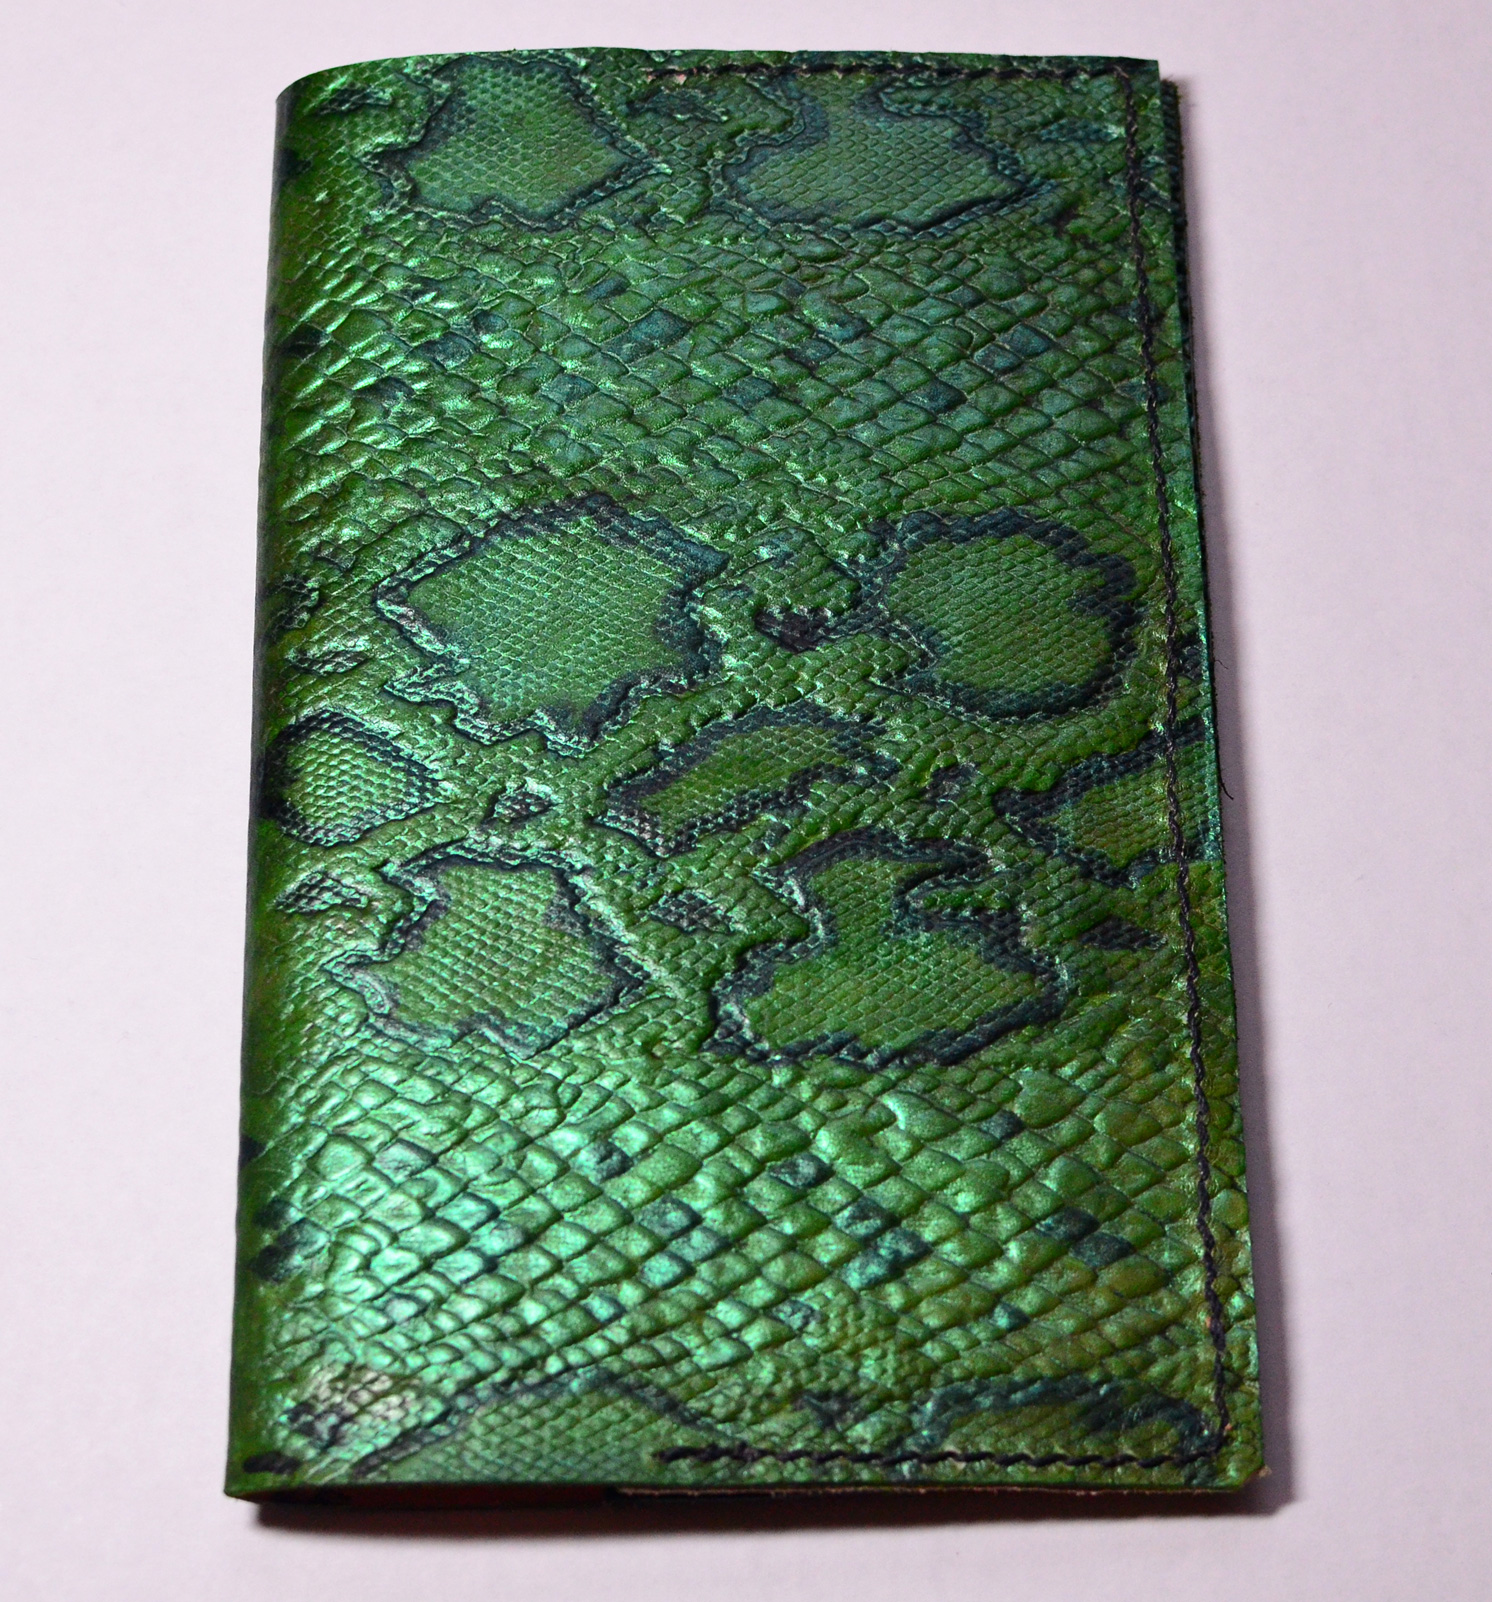 Emerald Snakeskin Leather Journal